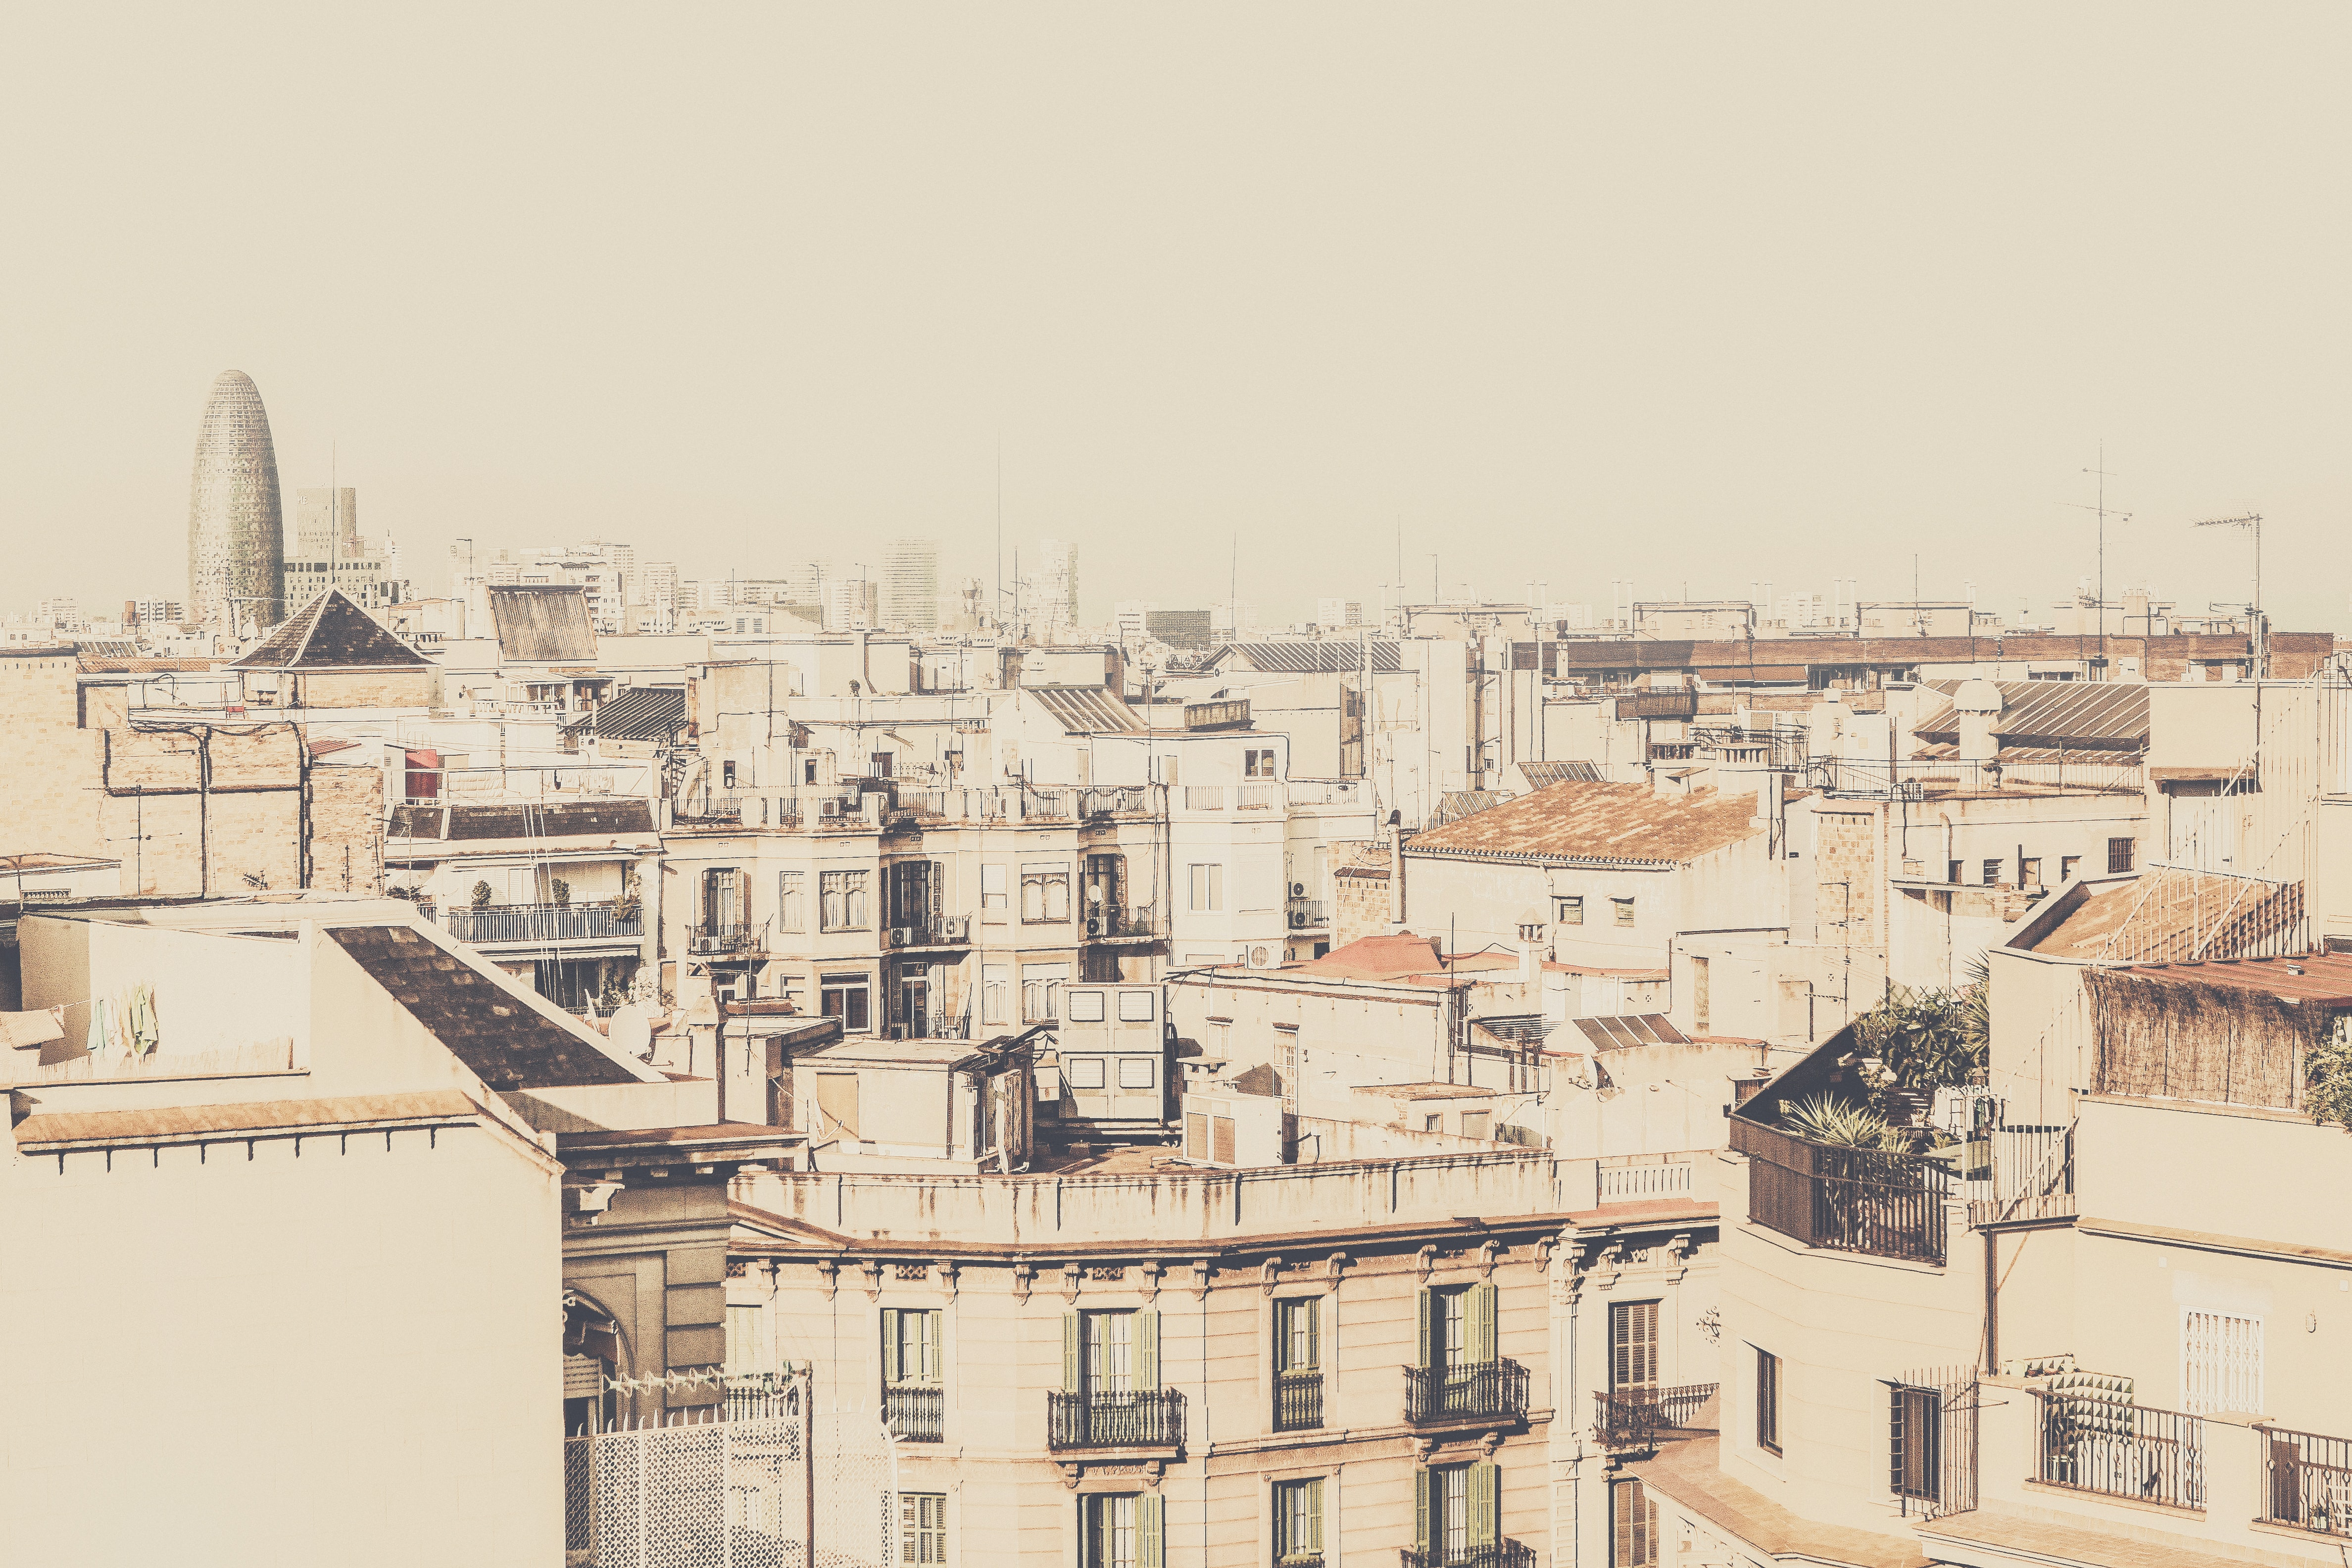 A bright shot of a residential district in Barcelona